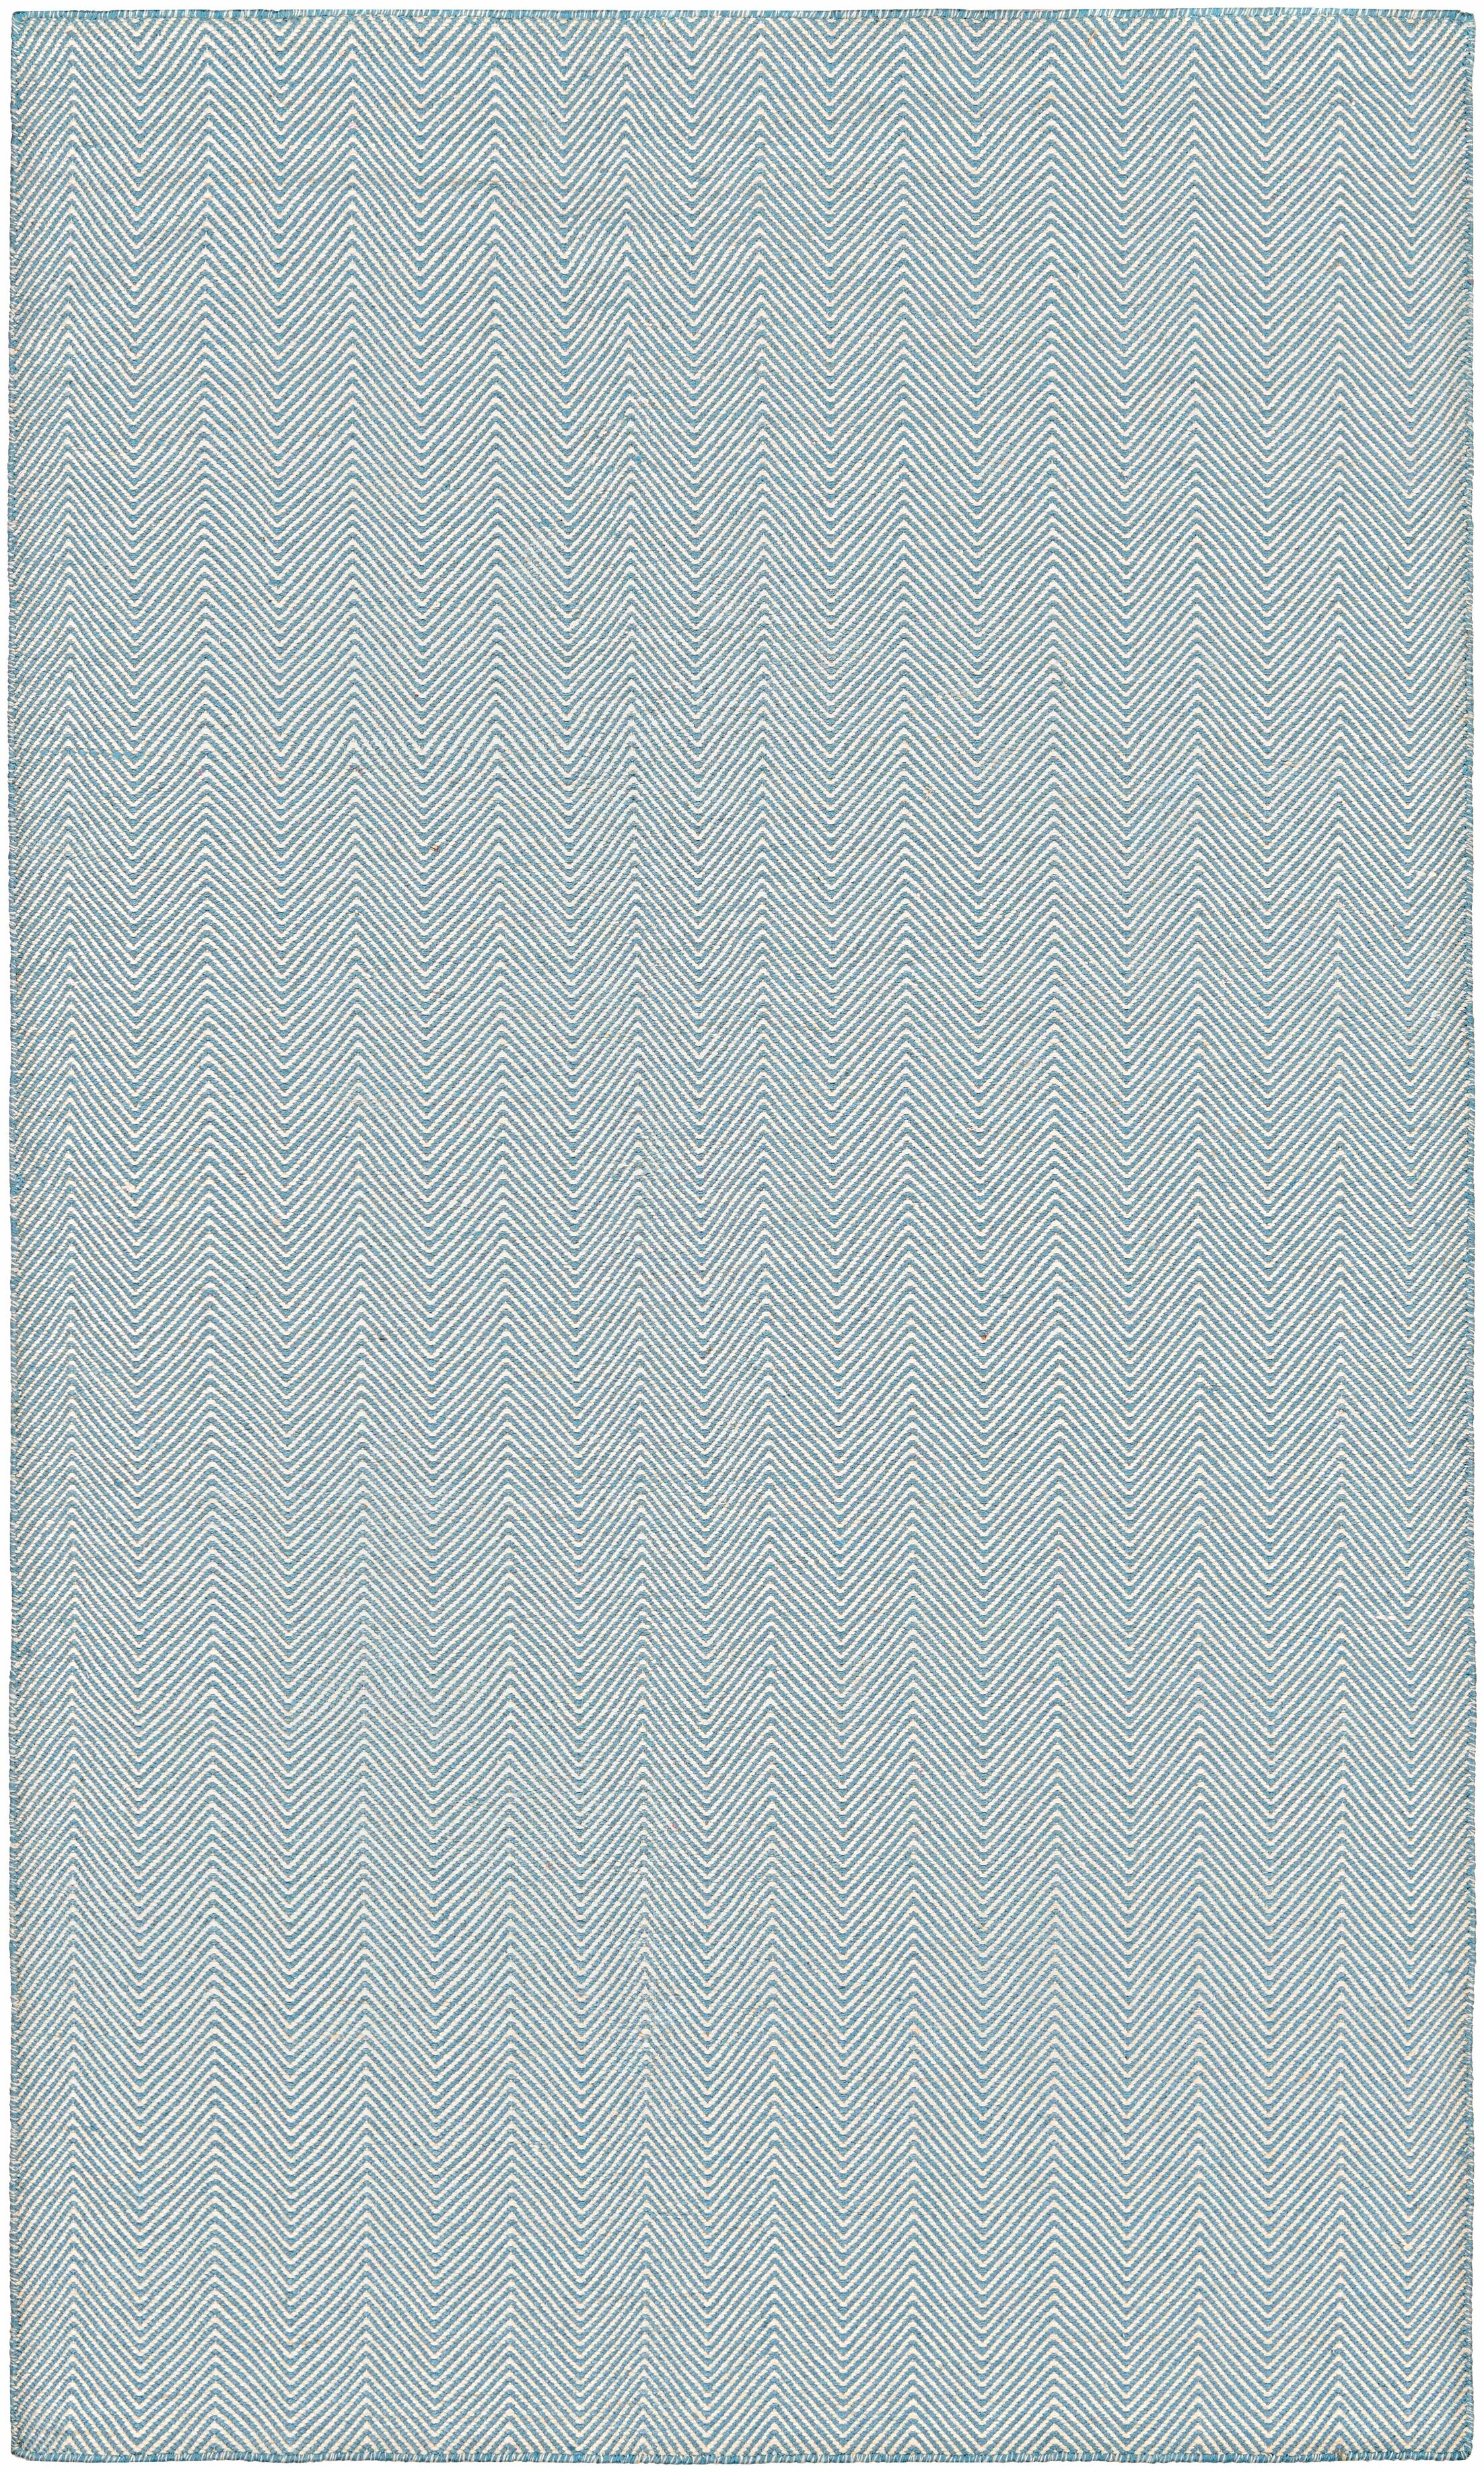 Alonso Hand-Woven Gray Chevron Indoor/Outdoor Area Rug Rug Size: Rectangle 8' x 10'